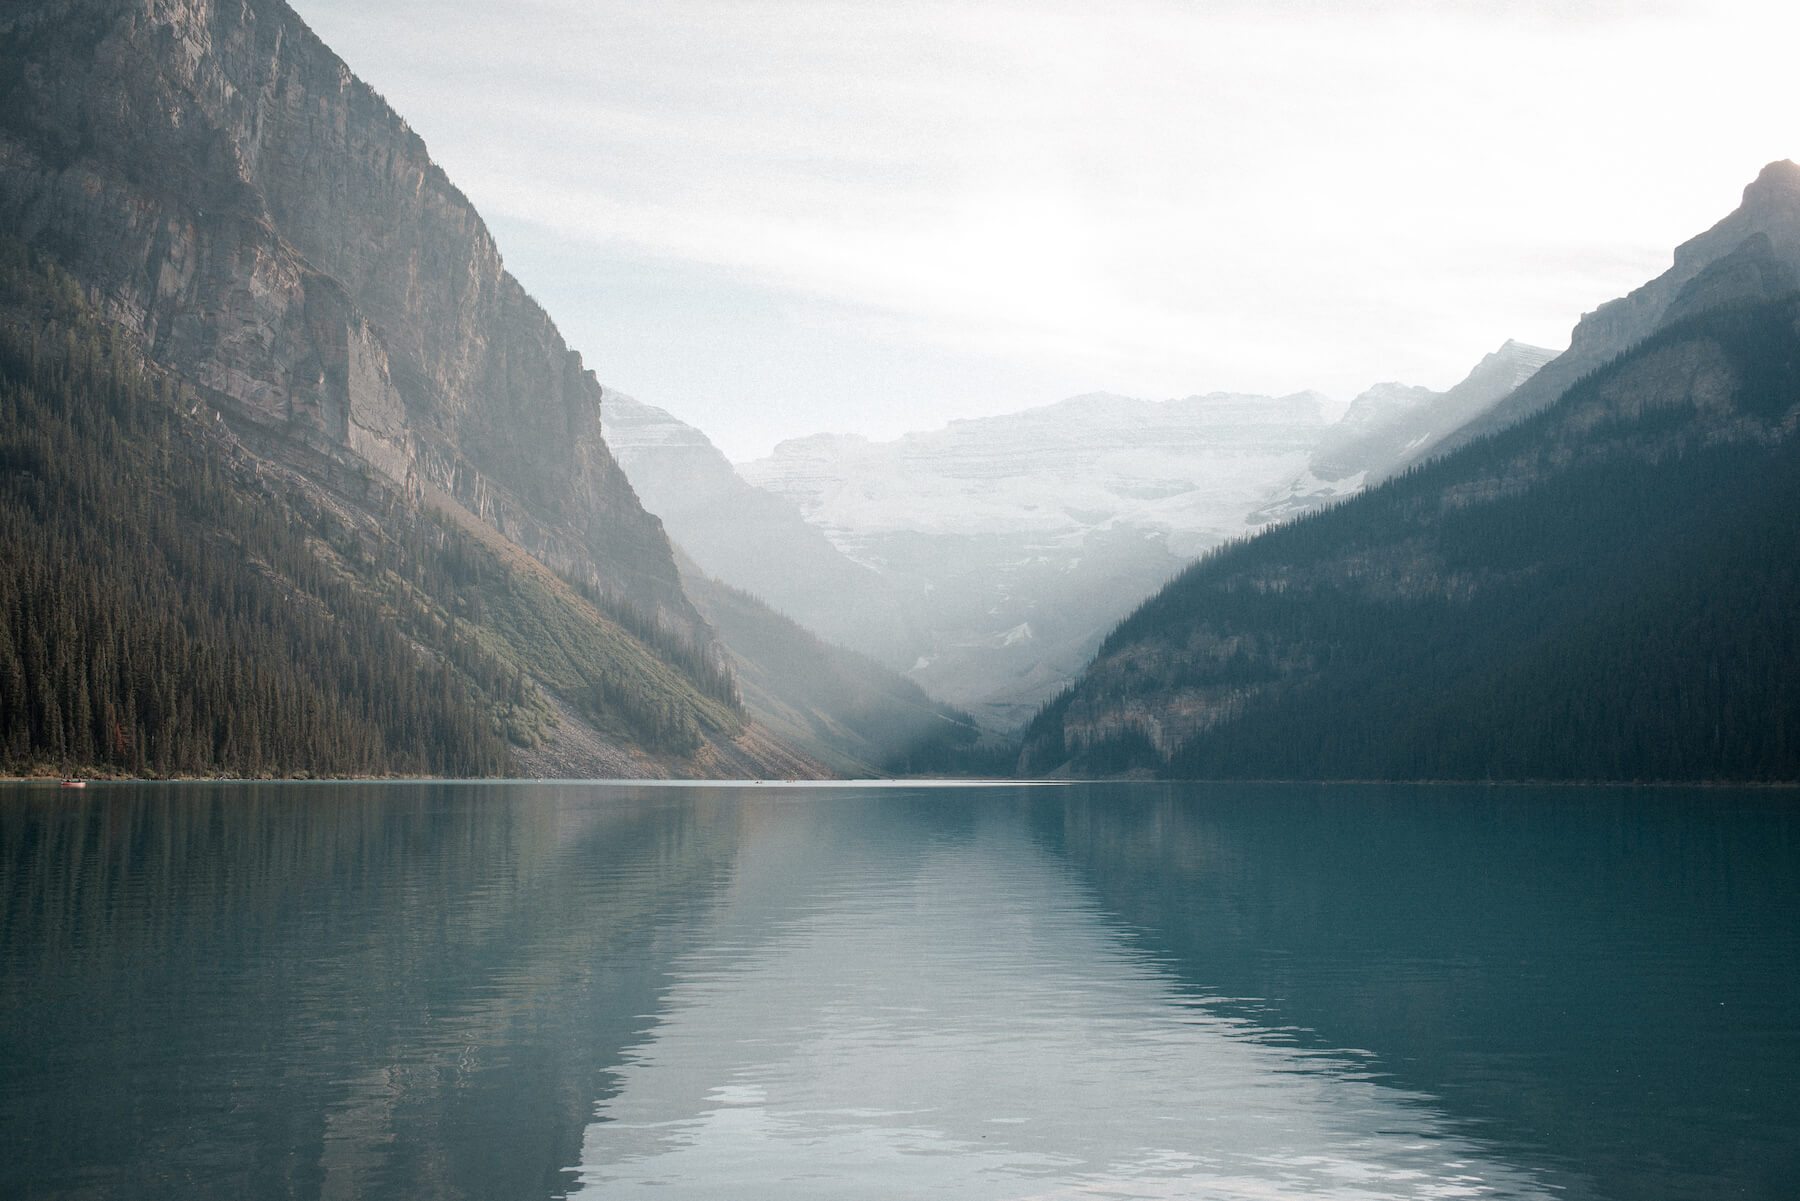 Calm morning on Lake Louise in Banff, Canada